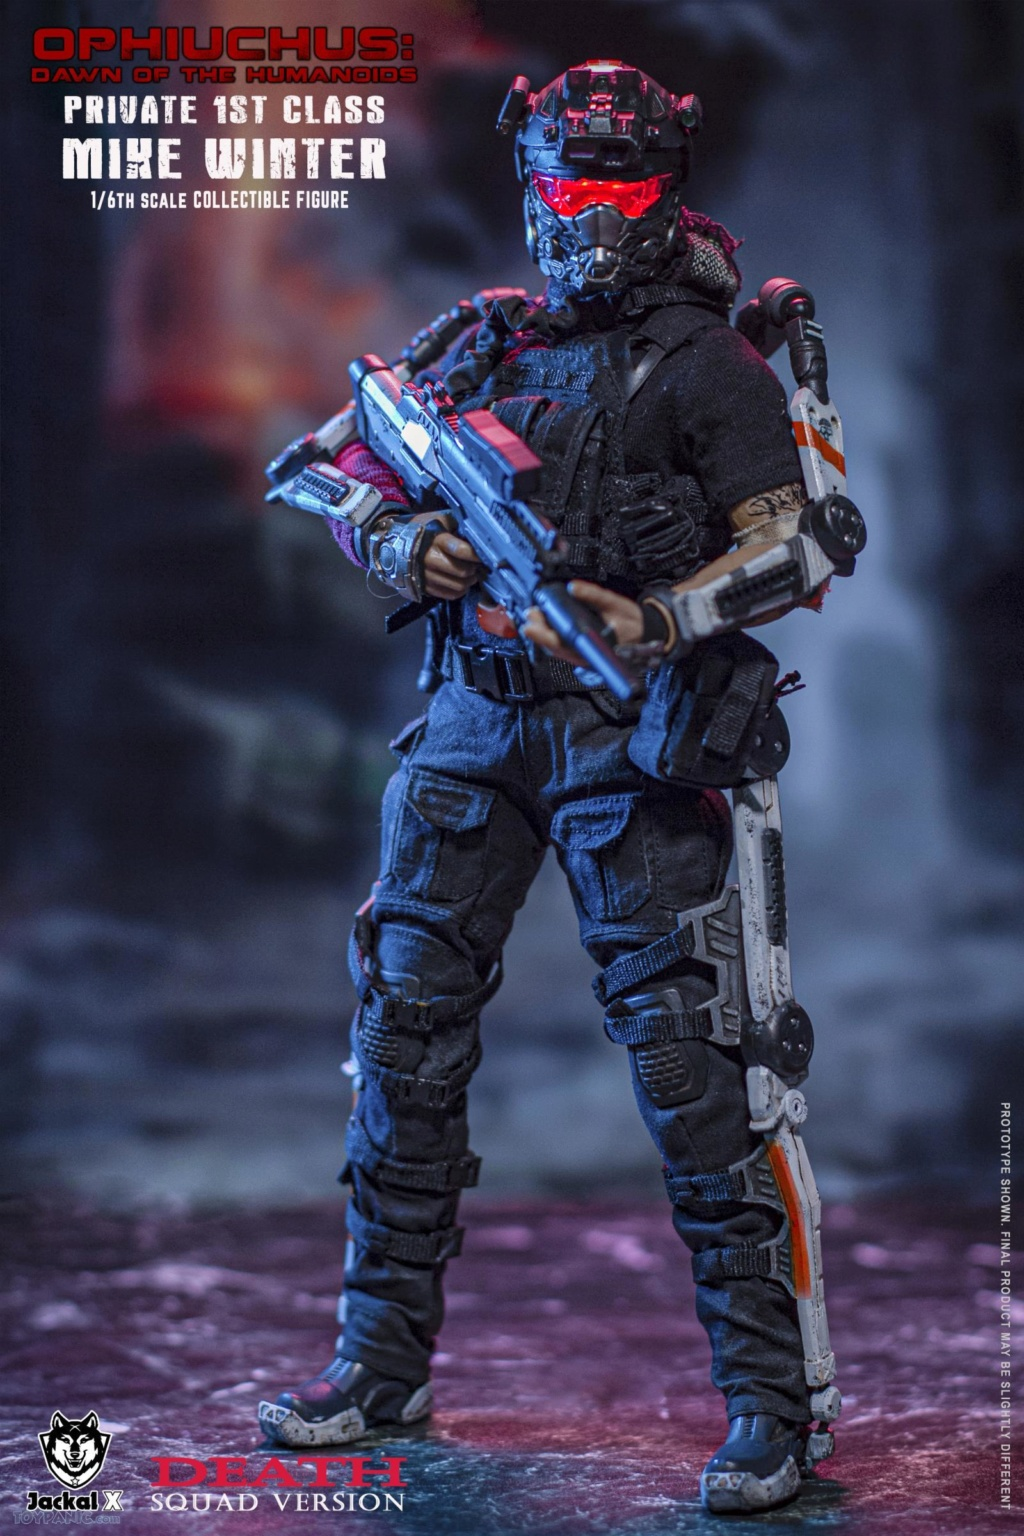 military - NEW PRODUCT: JackalX: 1/6 Ophiuchus: Dawn of Humanoid: Private 1st Class Mike Winter Collectible Figure (2 Versions) 43202032